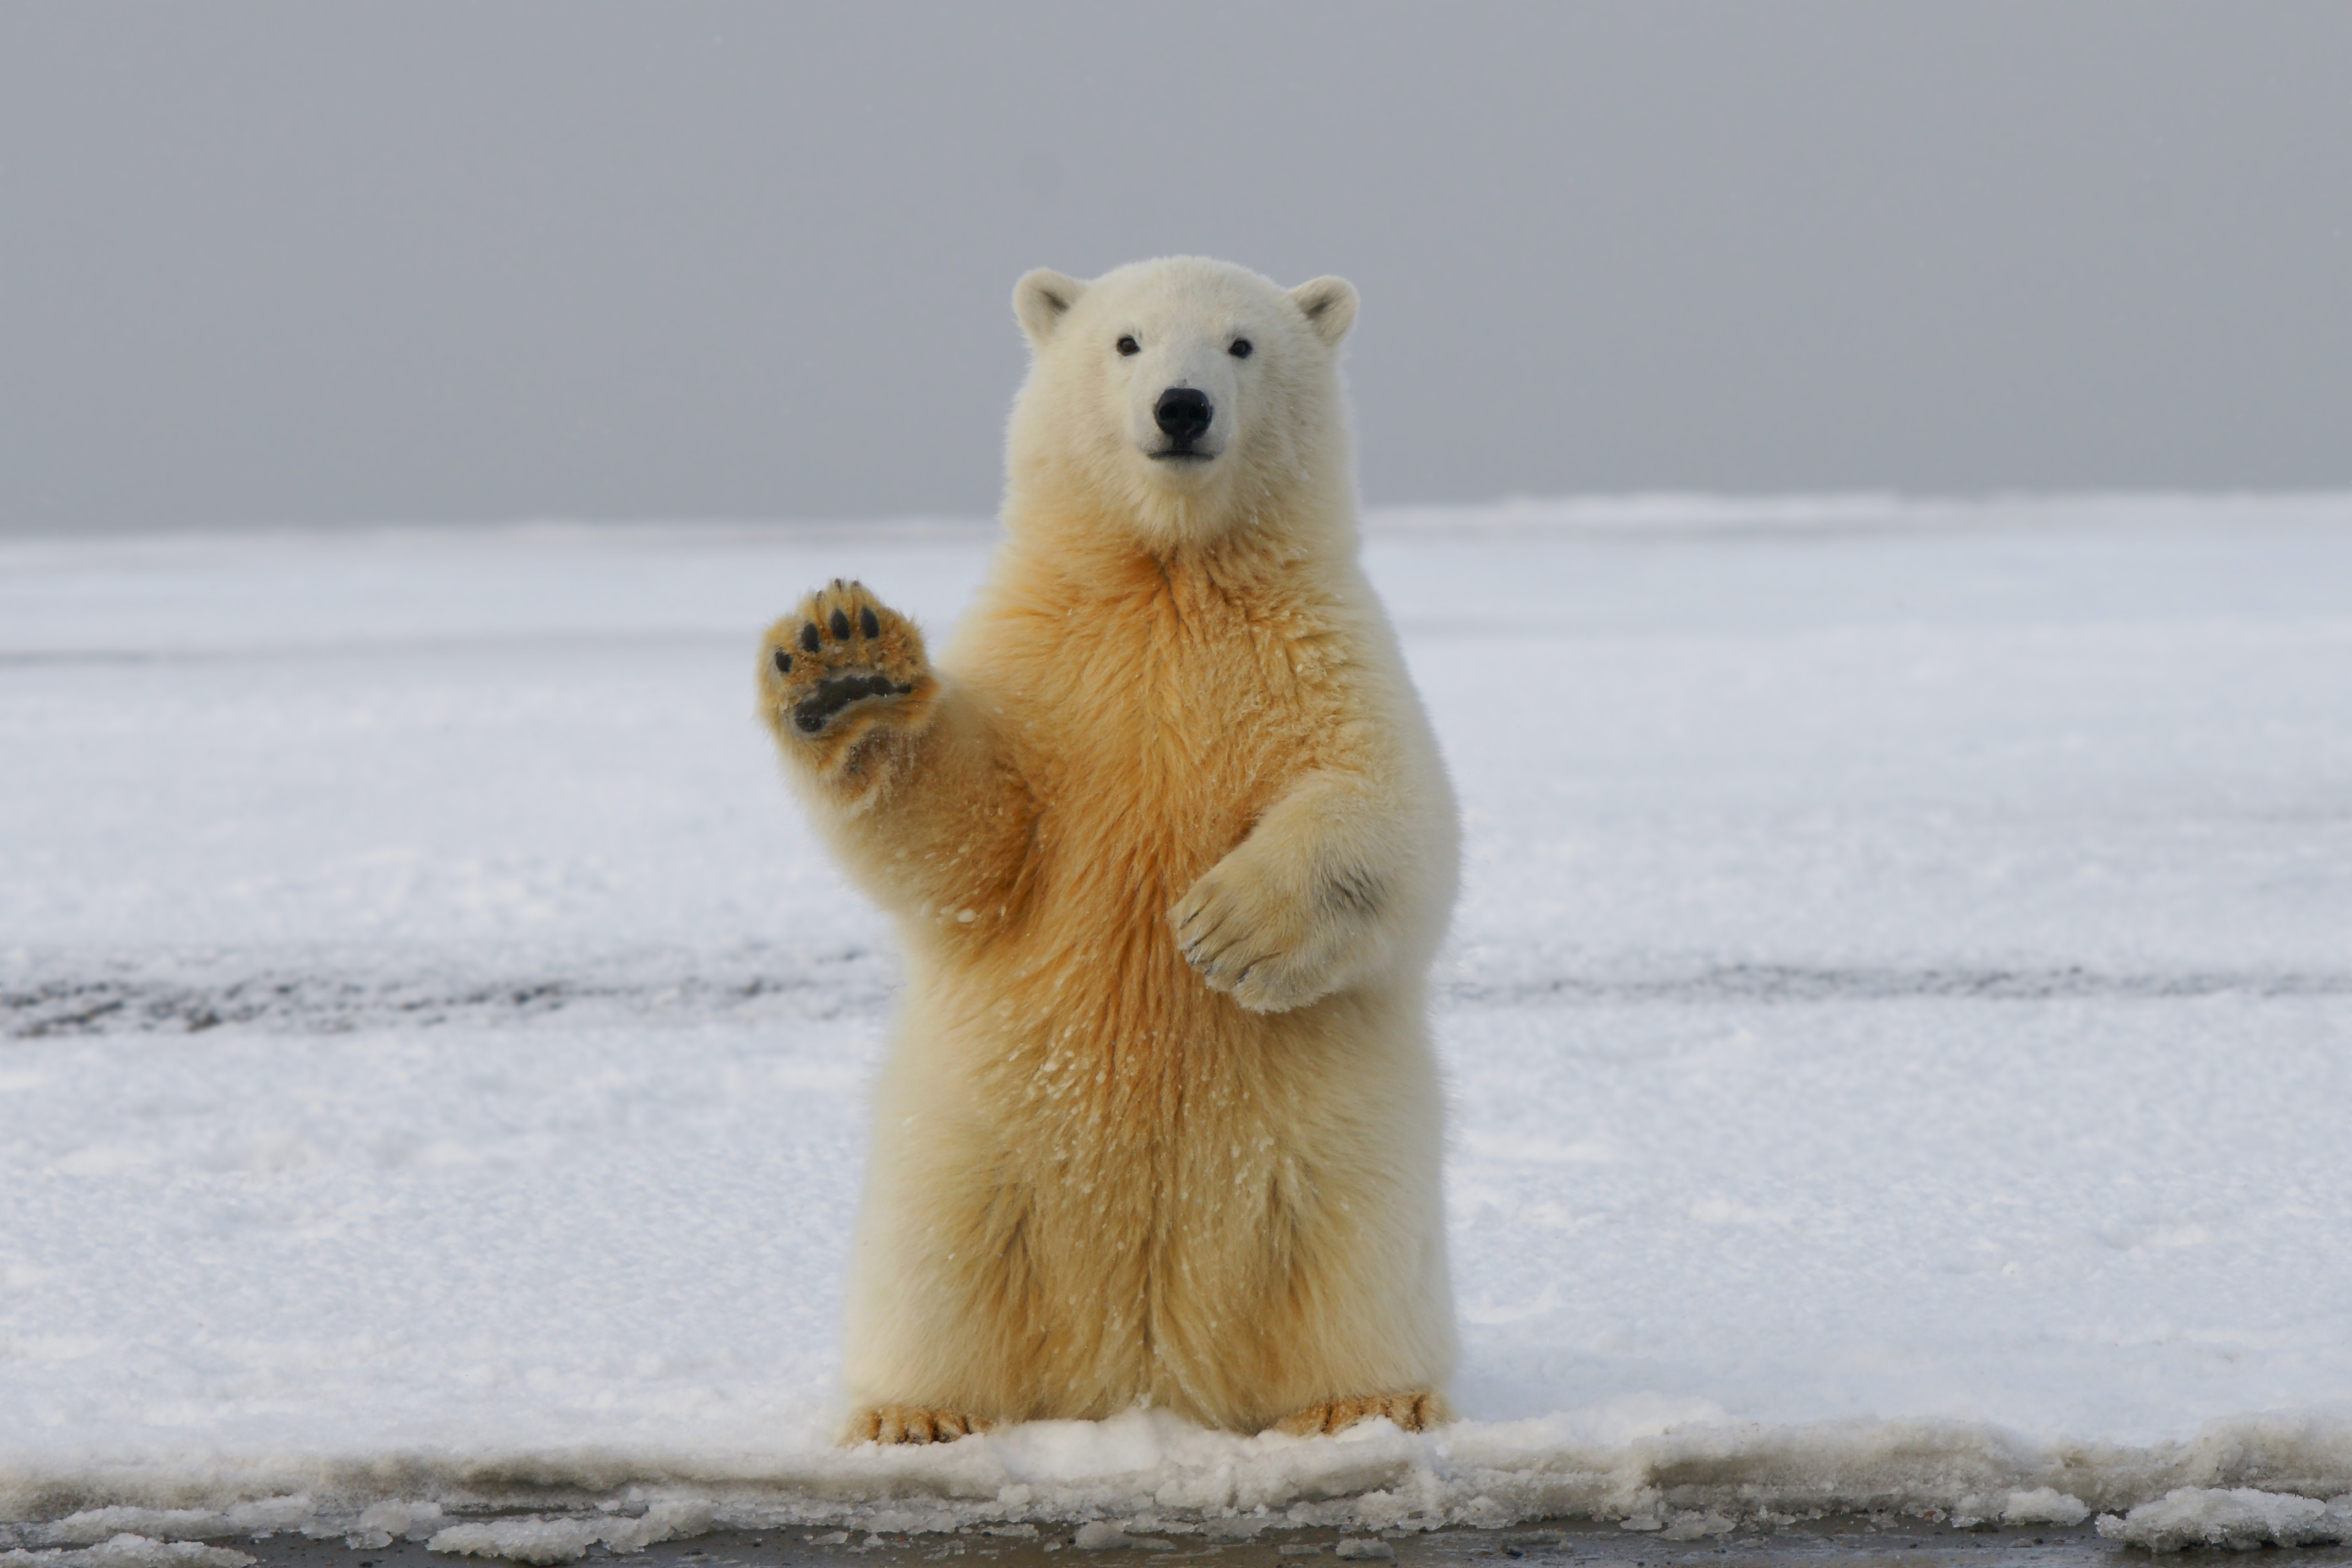 112817 download wallpaper Animals, Polar Bear, Bear, Paw, Funny screensavers and pictures for free